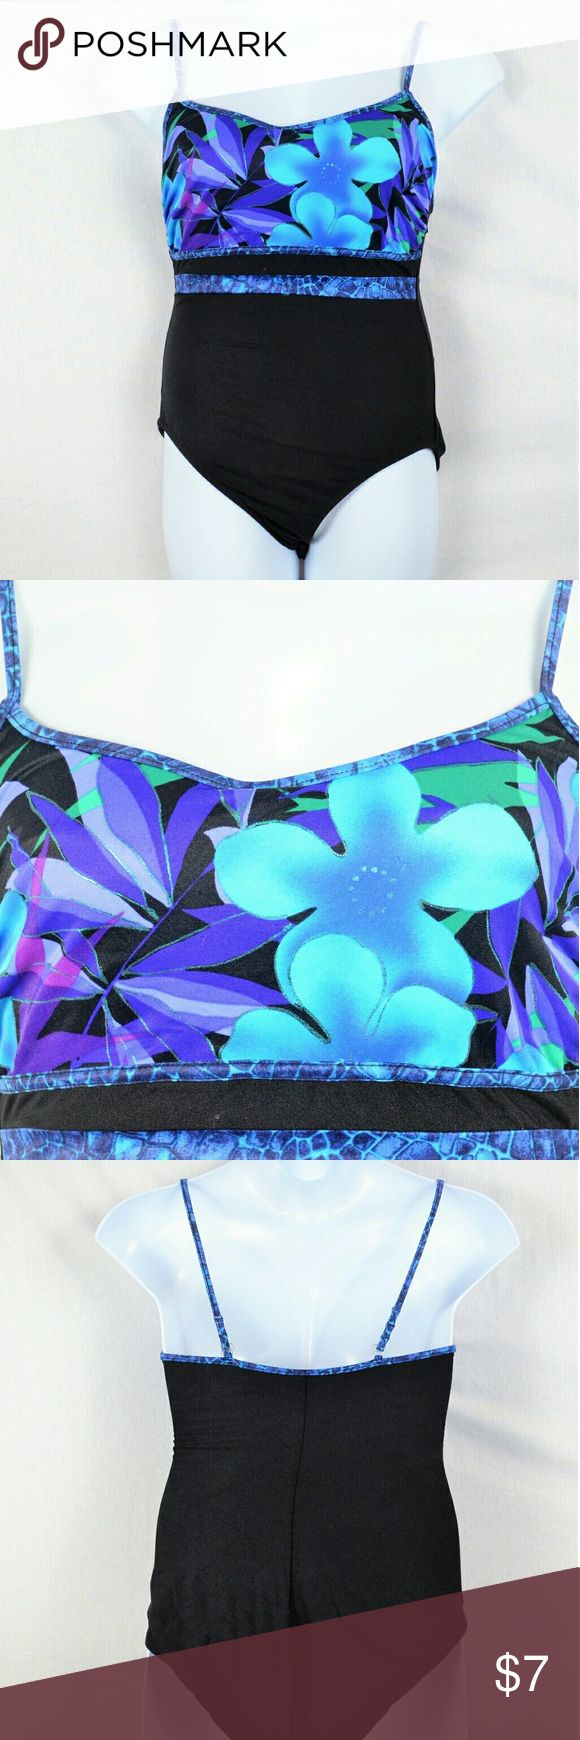 Size 14 Carol Wior 1 Piece Floral Bathing Suit This is a gorgeous 1 piece bathing suit from Carol Wior that is solid black on the bottom and on the back, and has bright blue flowers on the top with silver metallic trim.  The bra has beige lining with thin padding and the shoulder straps clasp on the back with clear clasps.  There are no flaws with this bathing suit, and it is size 14. #carolwior #1piecebathingsuit #floralbathingsuit #blackbathingsuit #metalliac #size14bathingsuit Carol Wior…